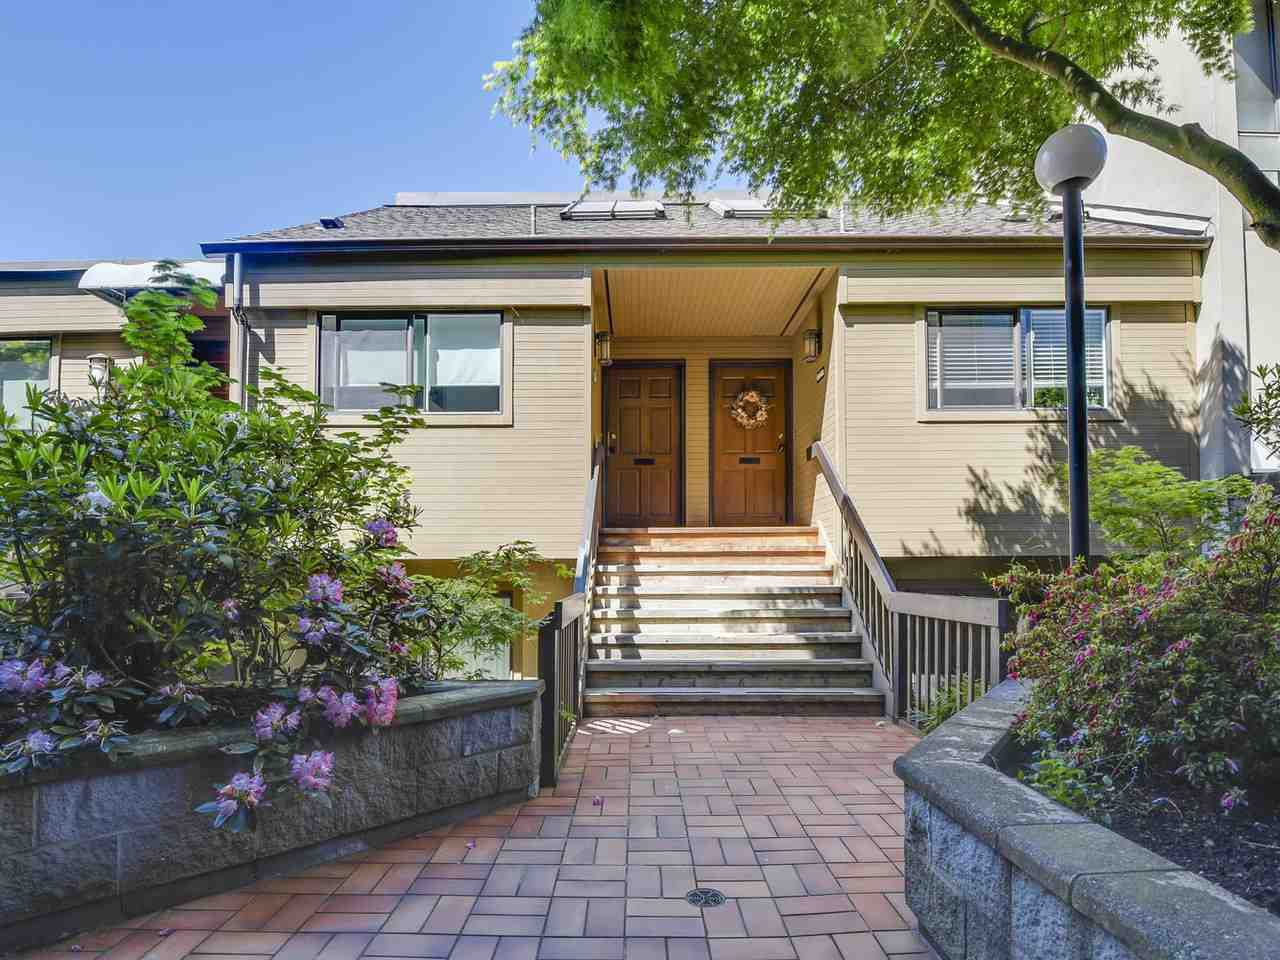 Main Photo: 2268 ALDER STREET in Vancouver: Fairview VW Townhouse for sale (Vancouver West)  : MLS®# R2173350